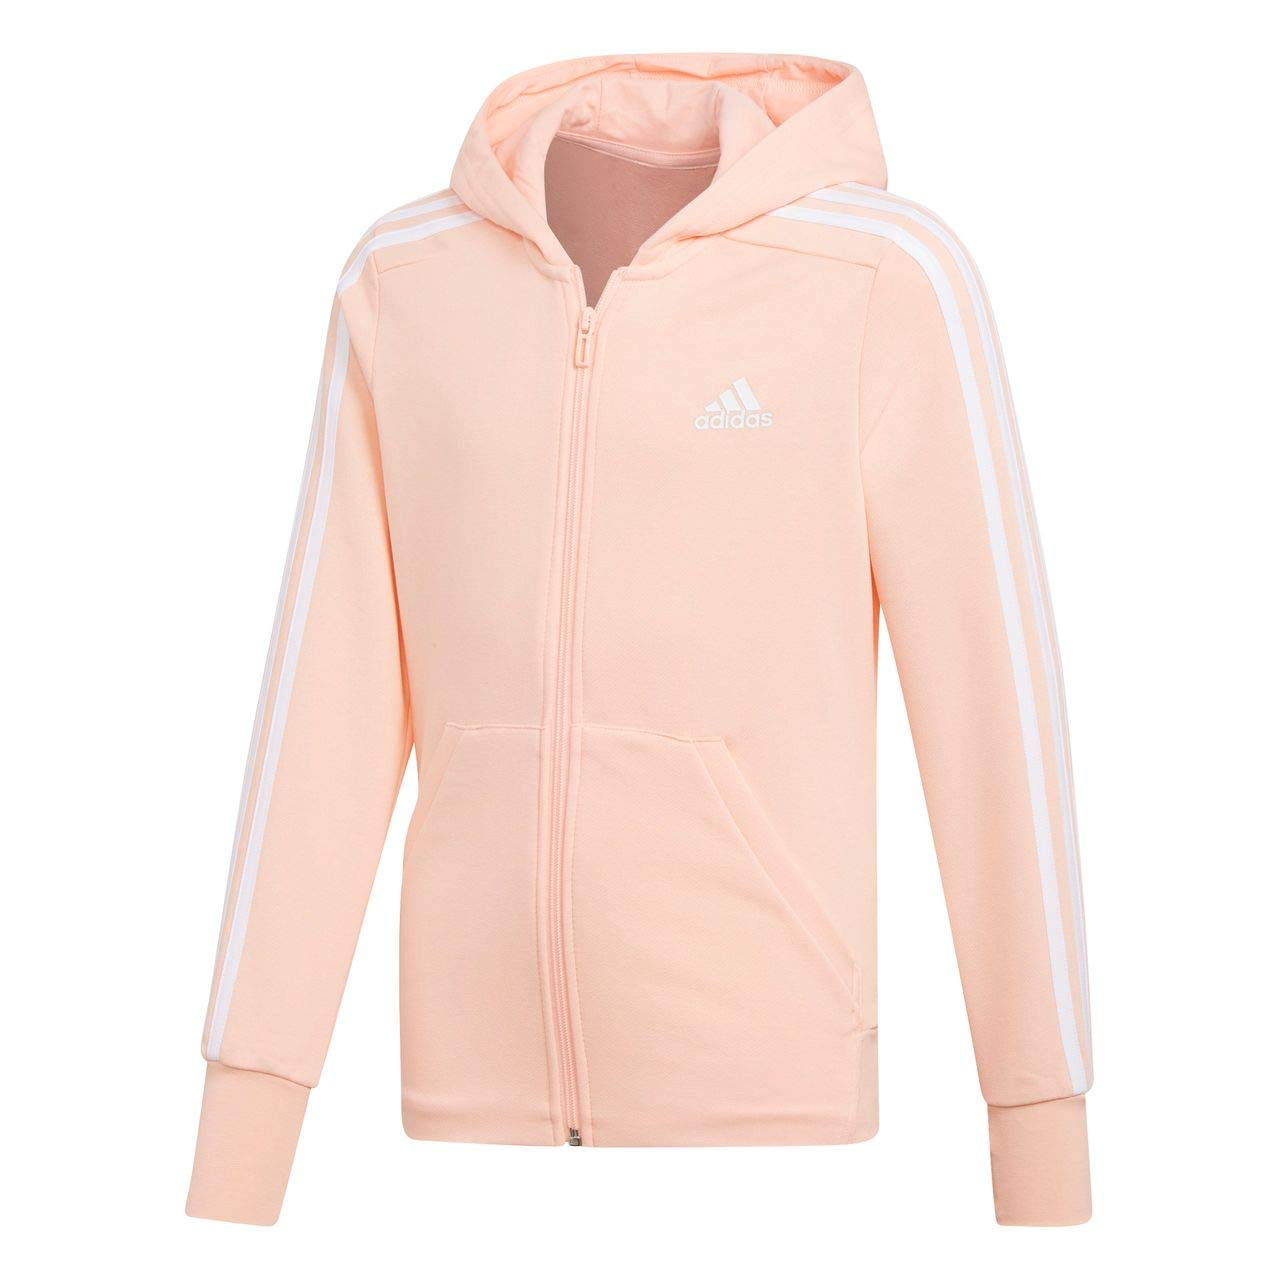 adidas niña 3 Stripes Full Zip con Capucha Chaqueta con Capucha de, Niñas, DJ1303, Dark Grey Heather/Haze Coral/White, 116: Amazon.es: Deportes y aire libre